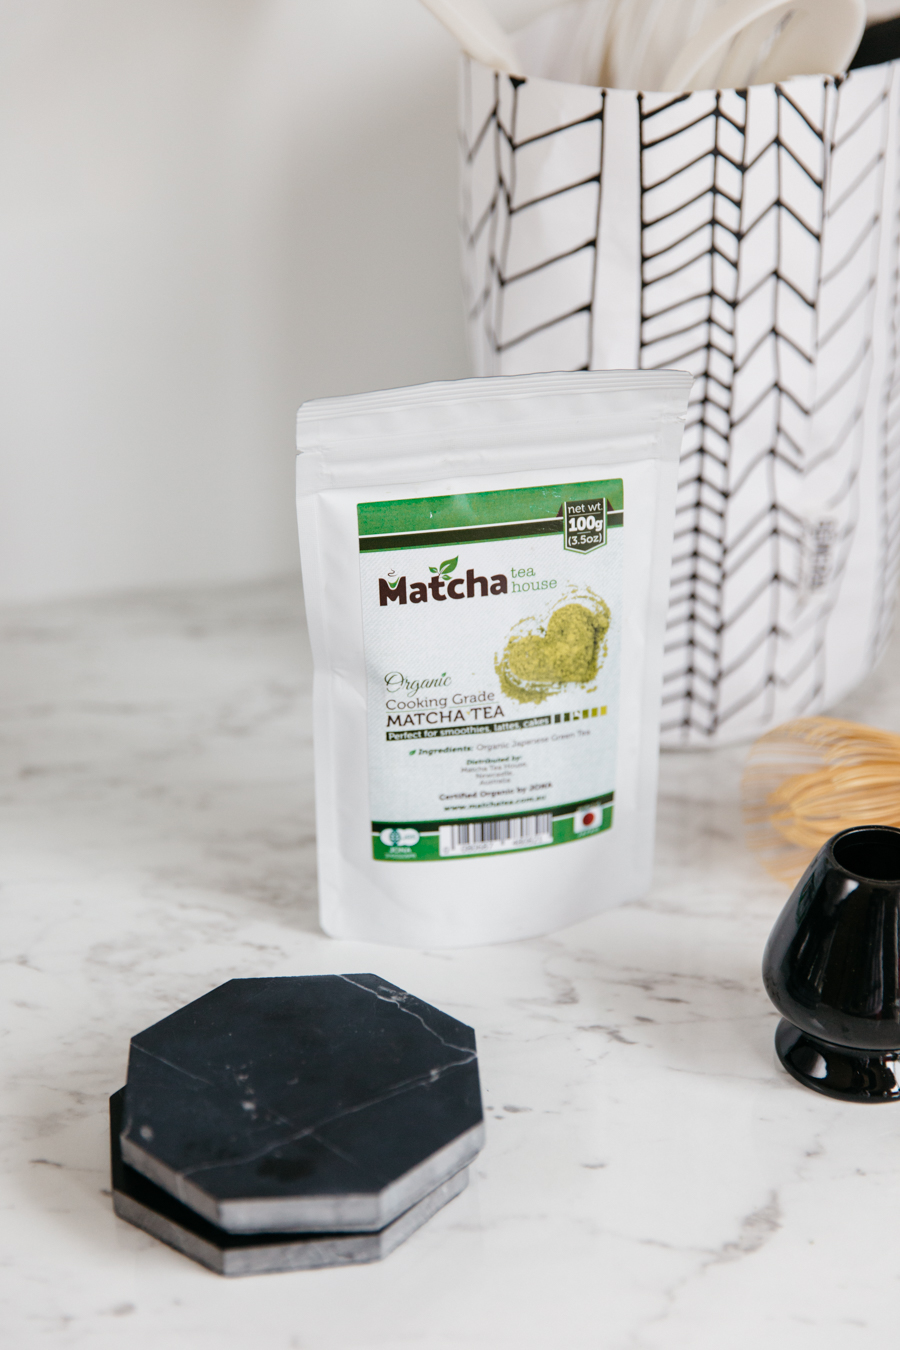 Matcha tea power from matchatea.com.au Australia.